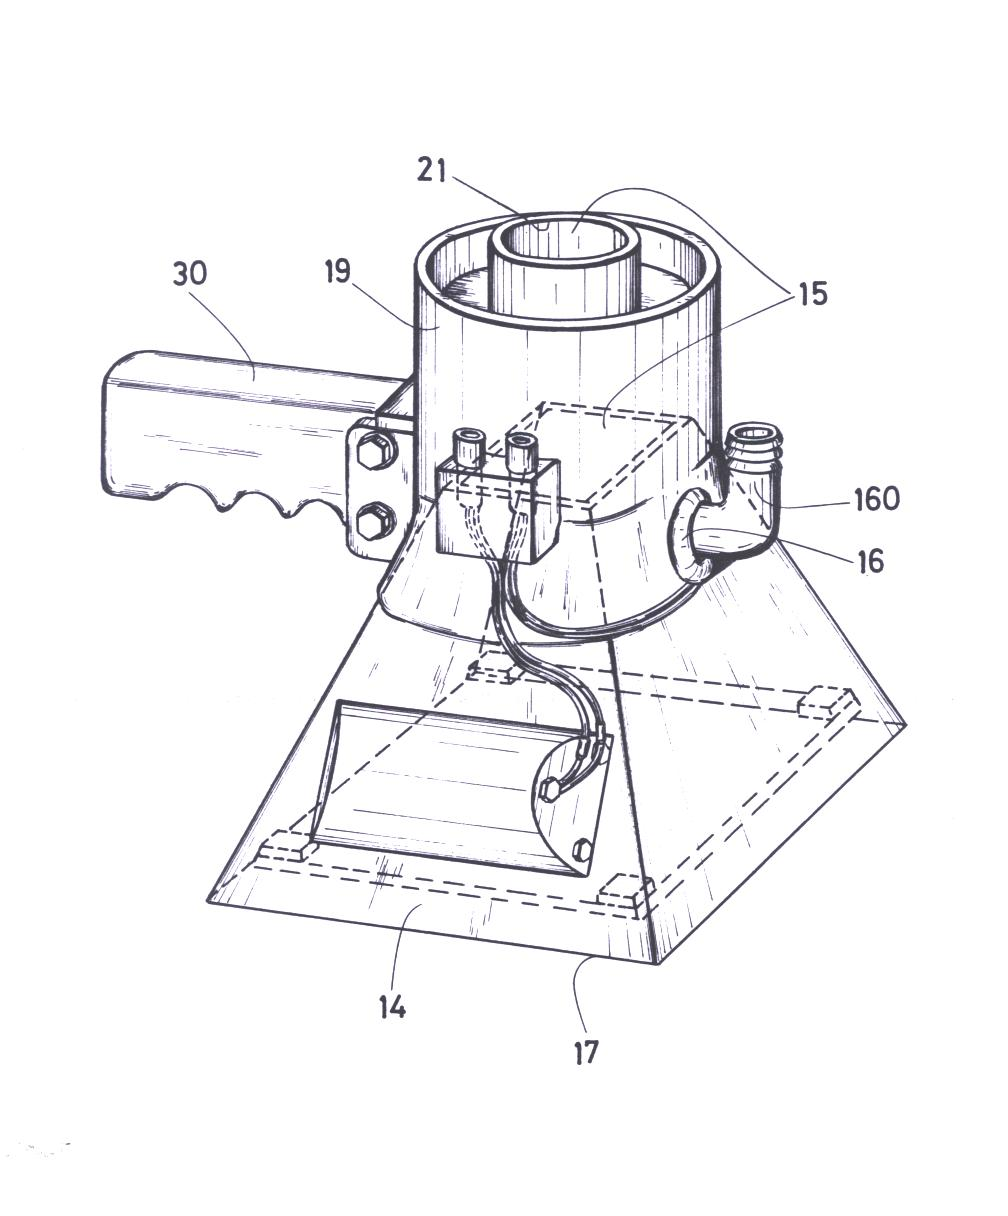 Patents And Brand Names Nordseetaucher Gmbh Hyperbaric Welding Diagram Device For Cameras In Situ Underwater Filming Arc